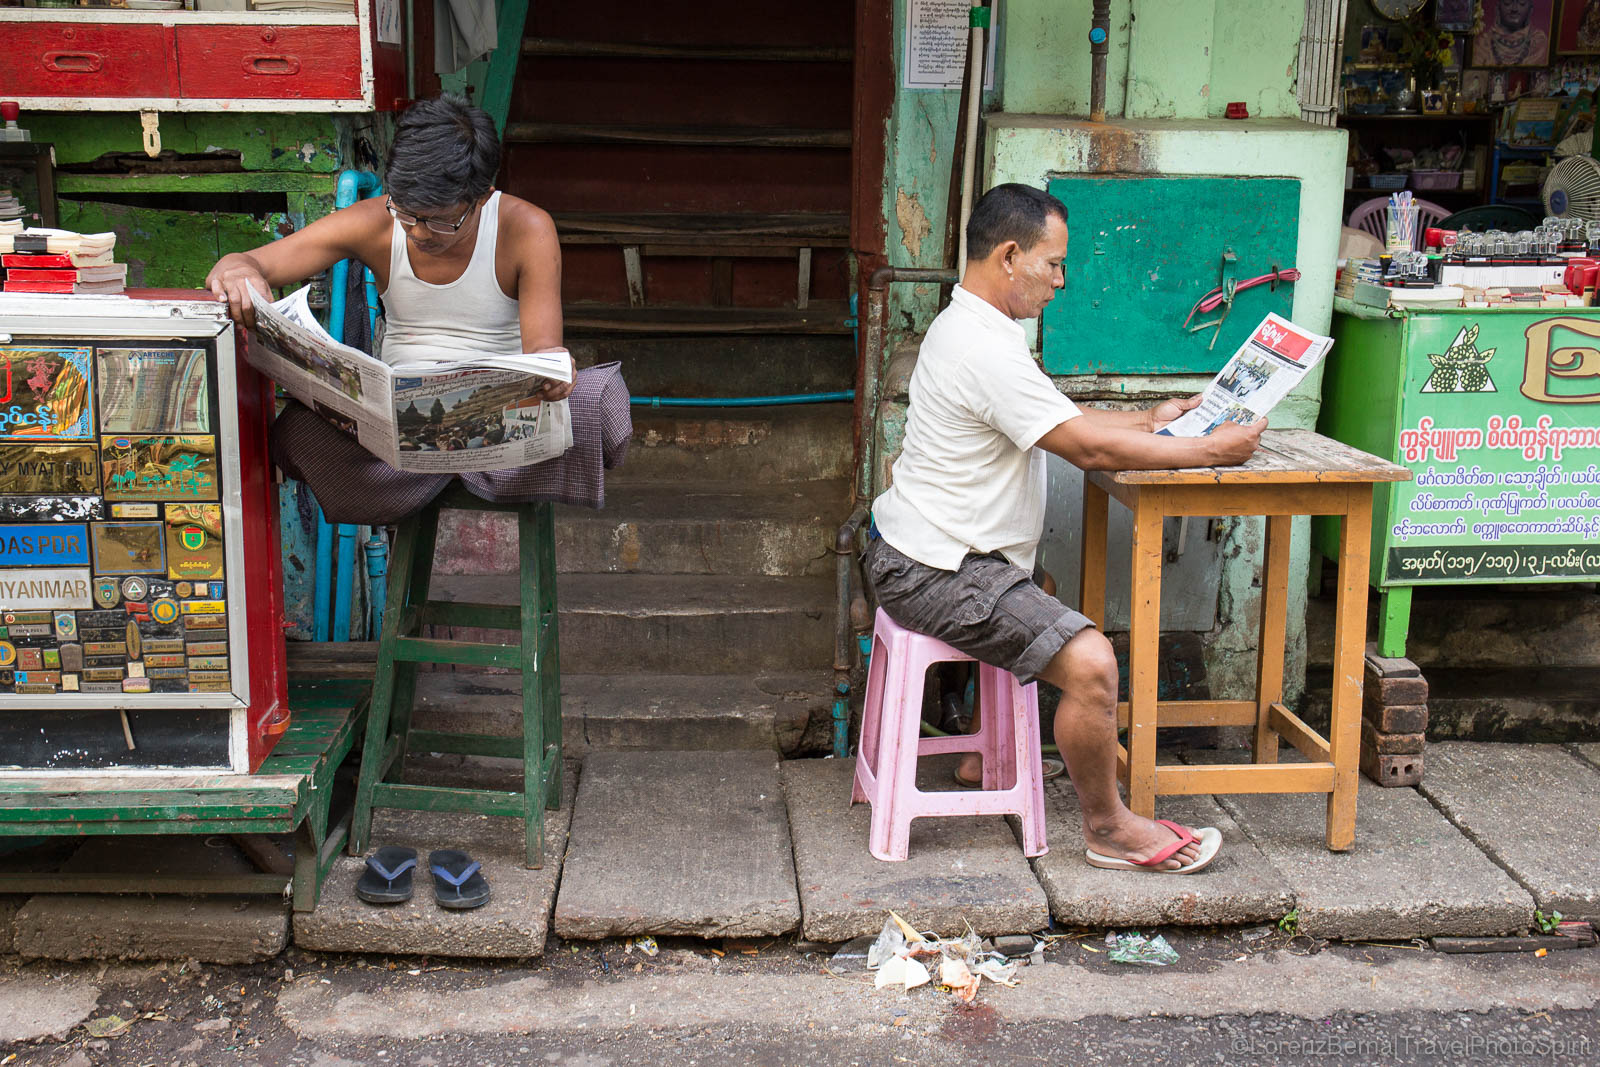 Two local men reading the News in Yangon streets.